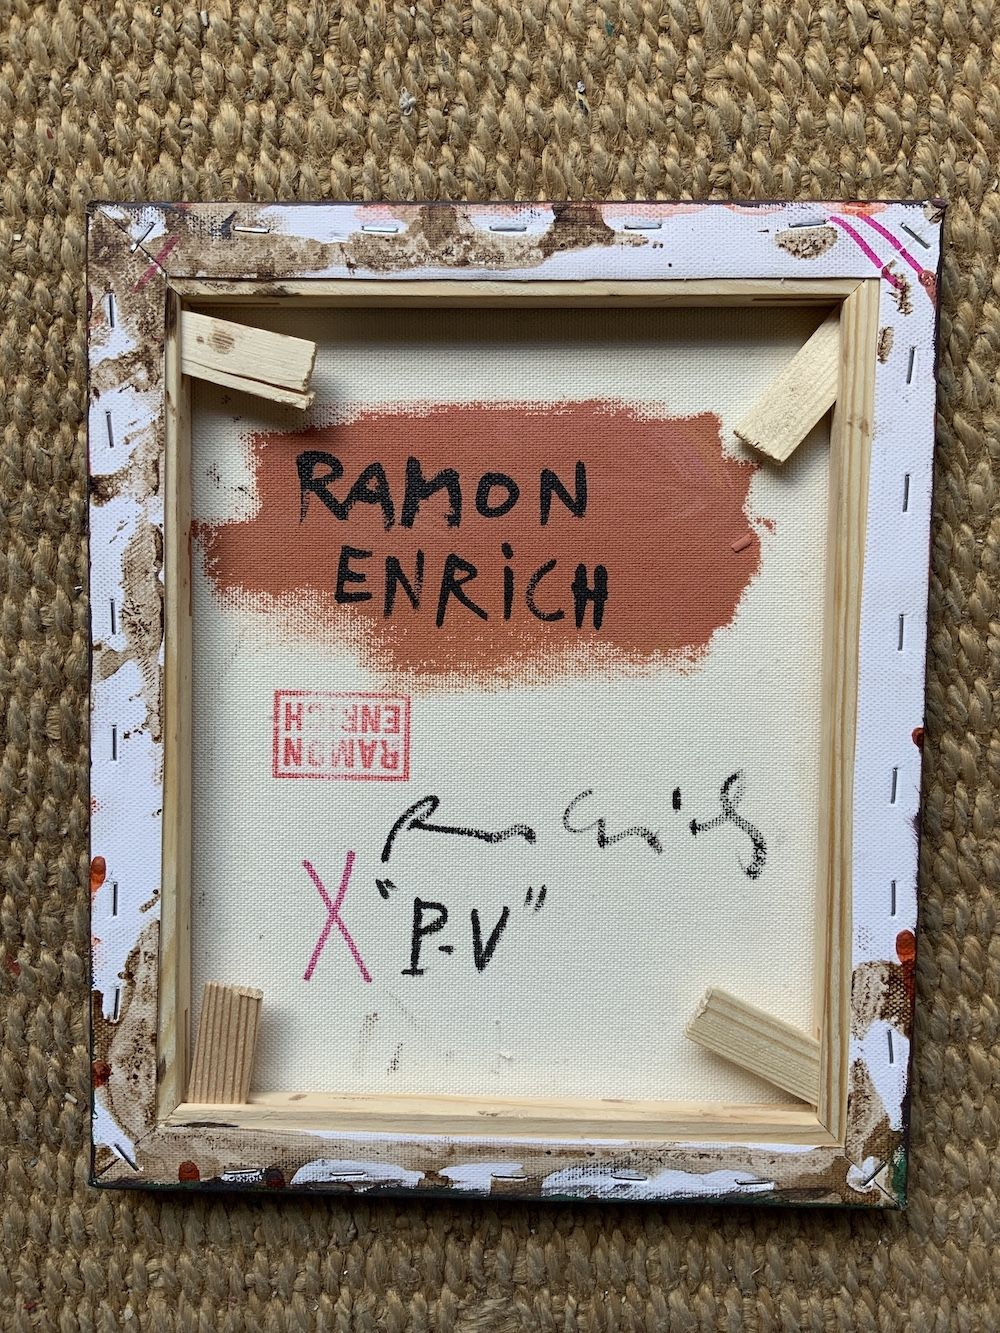 P-V,Ramon Enrich,Peinture contemporaine, detail 4